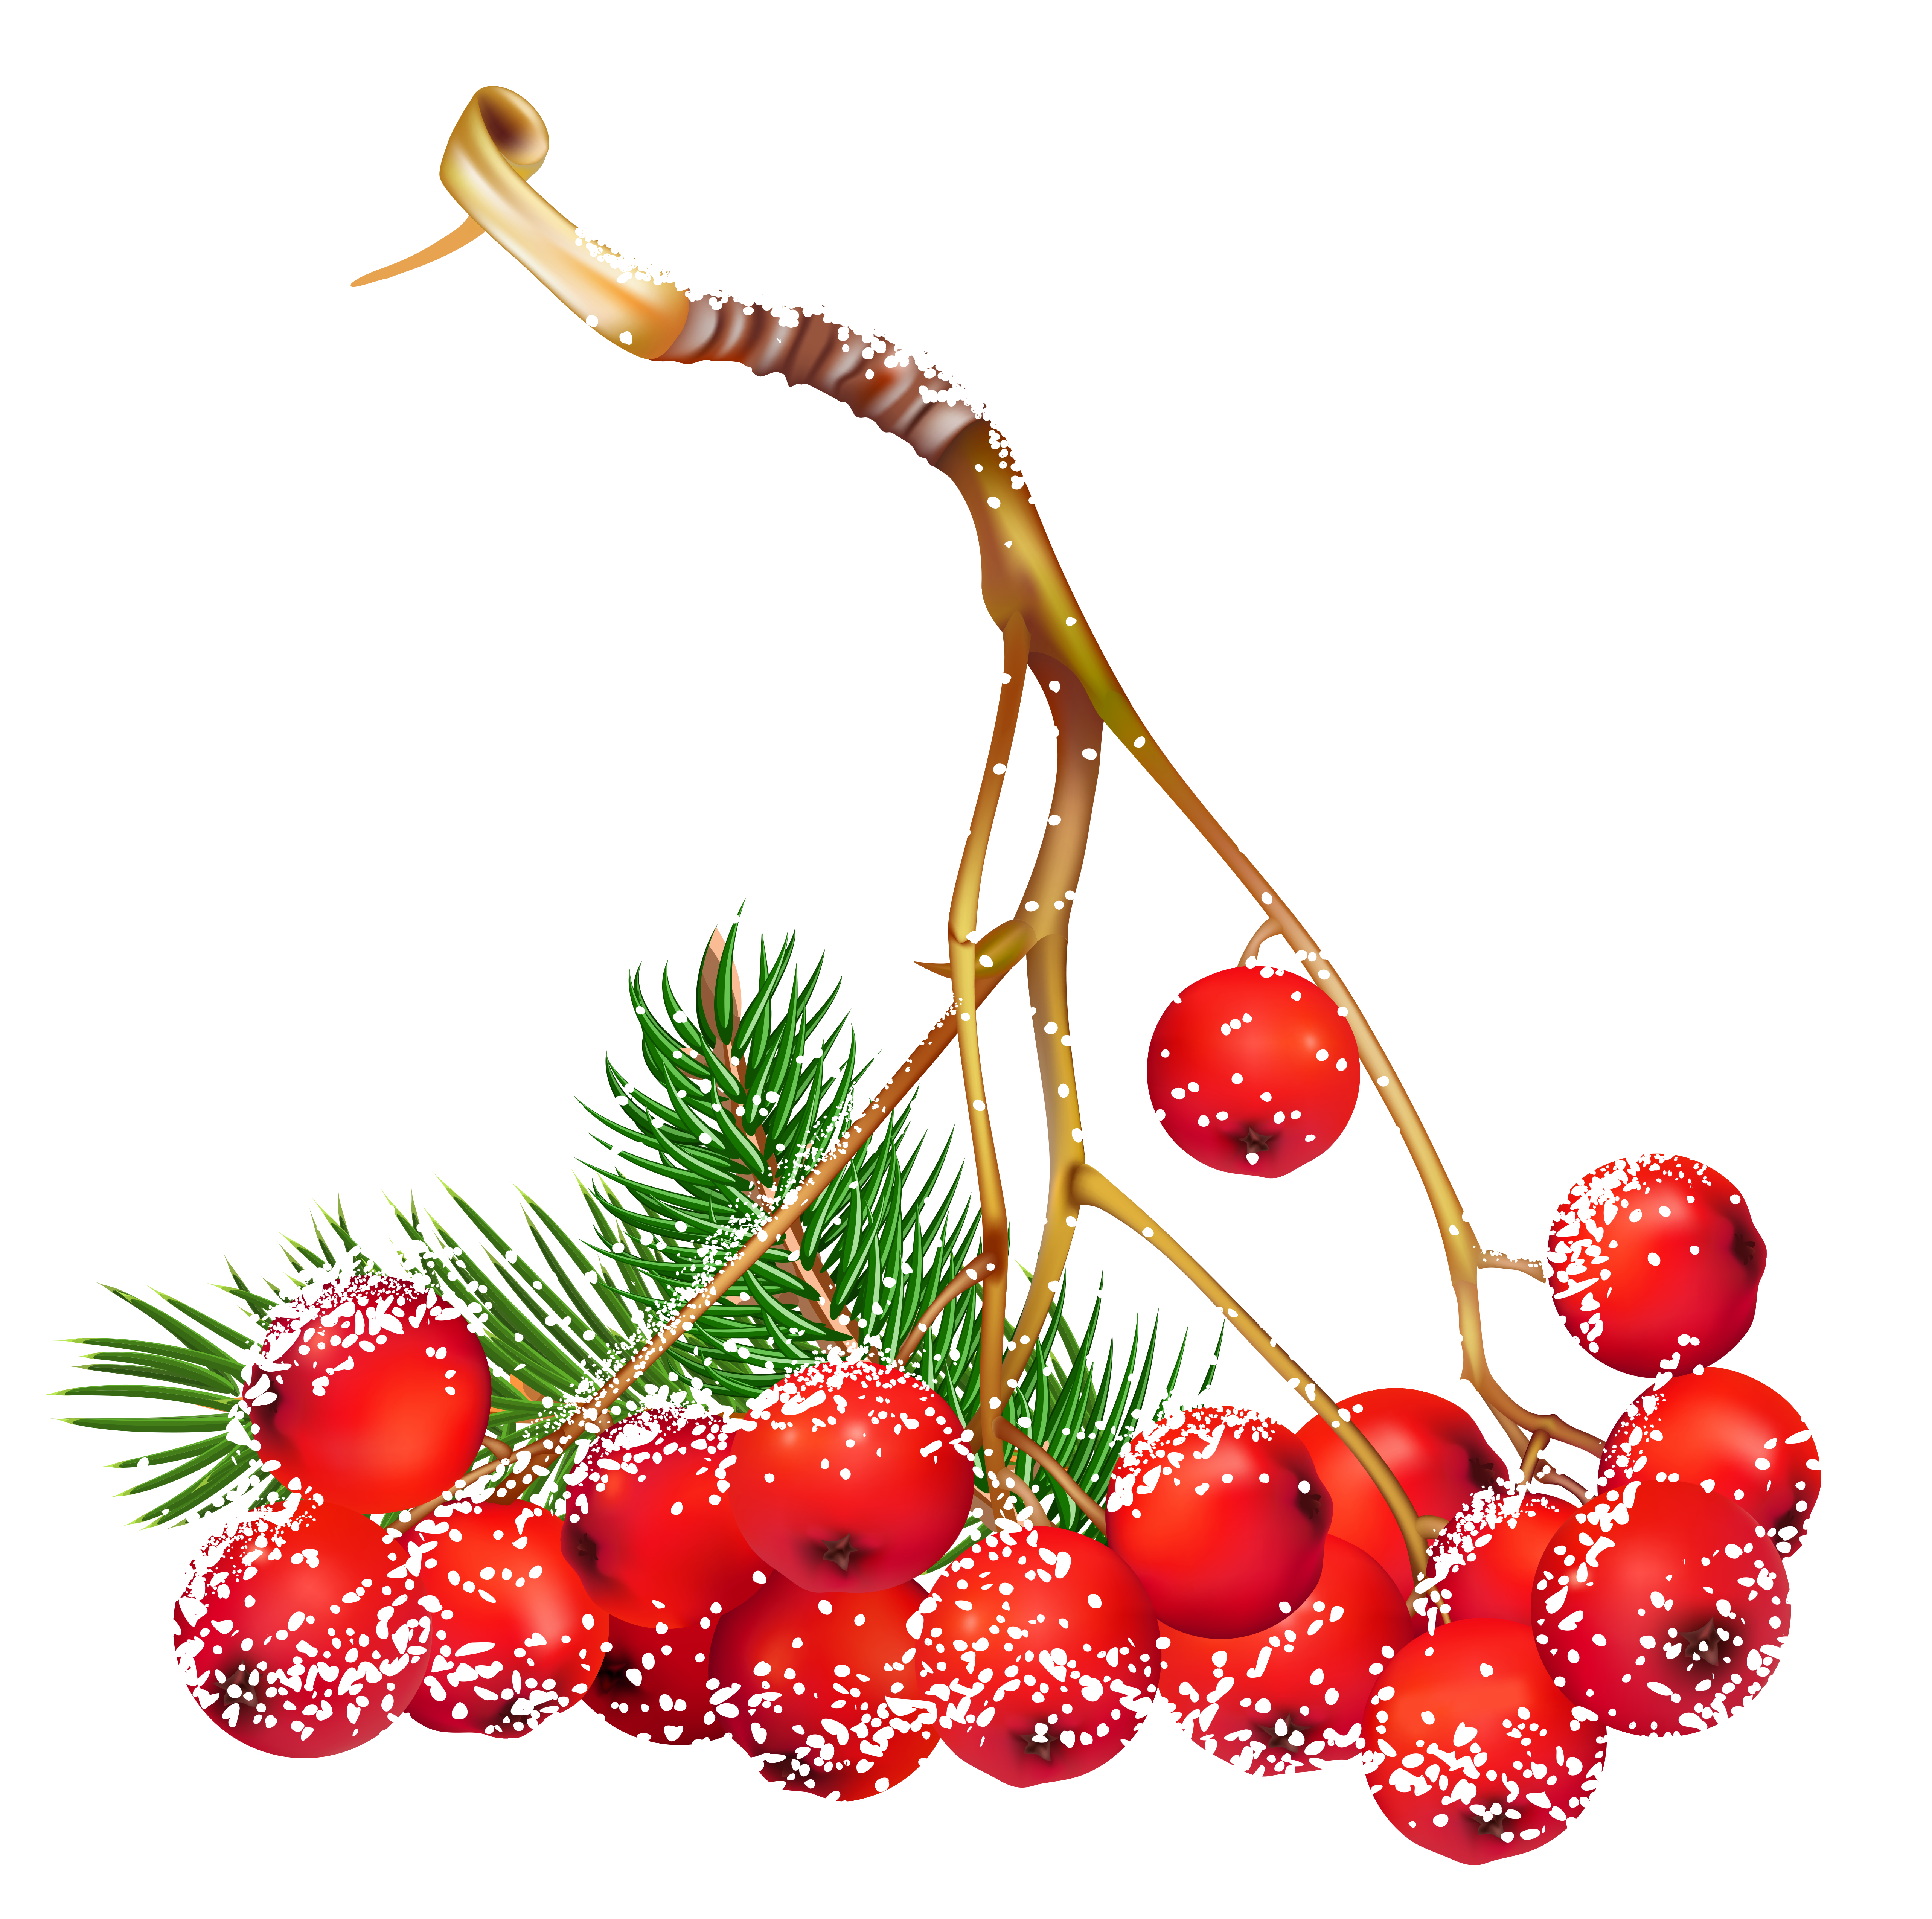 5132x5098 Transparent Christmas Snowy Holly Berries Png Clipartu200b Gallery